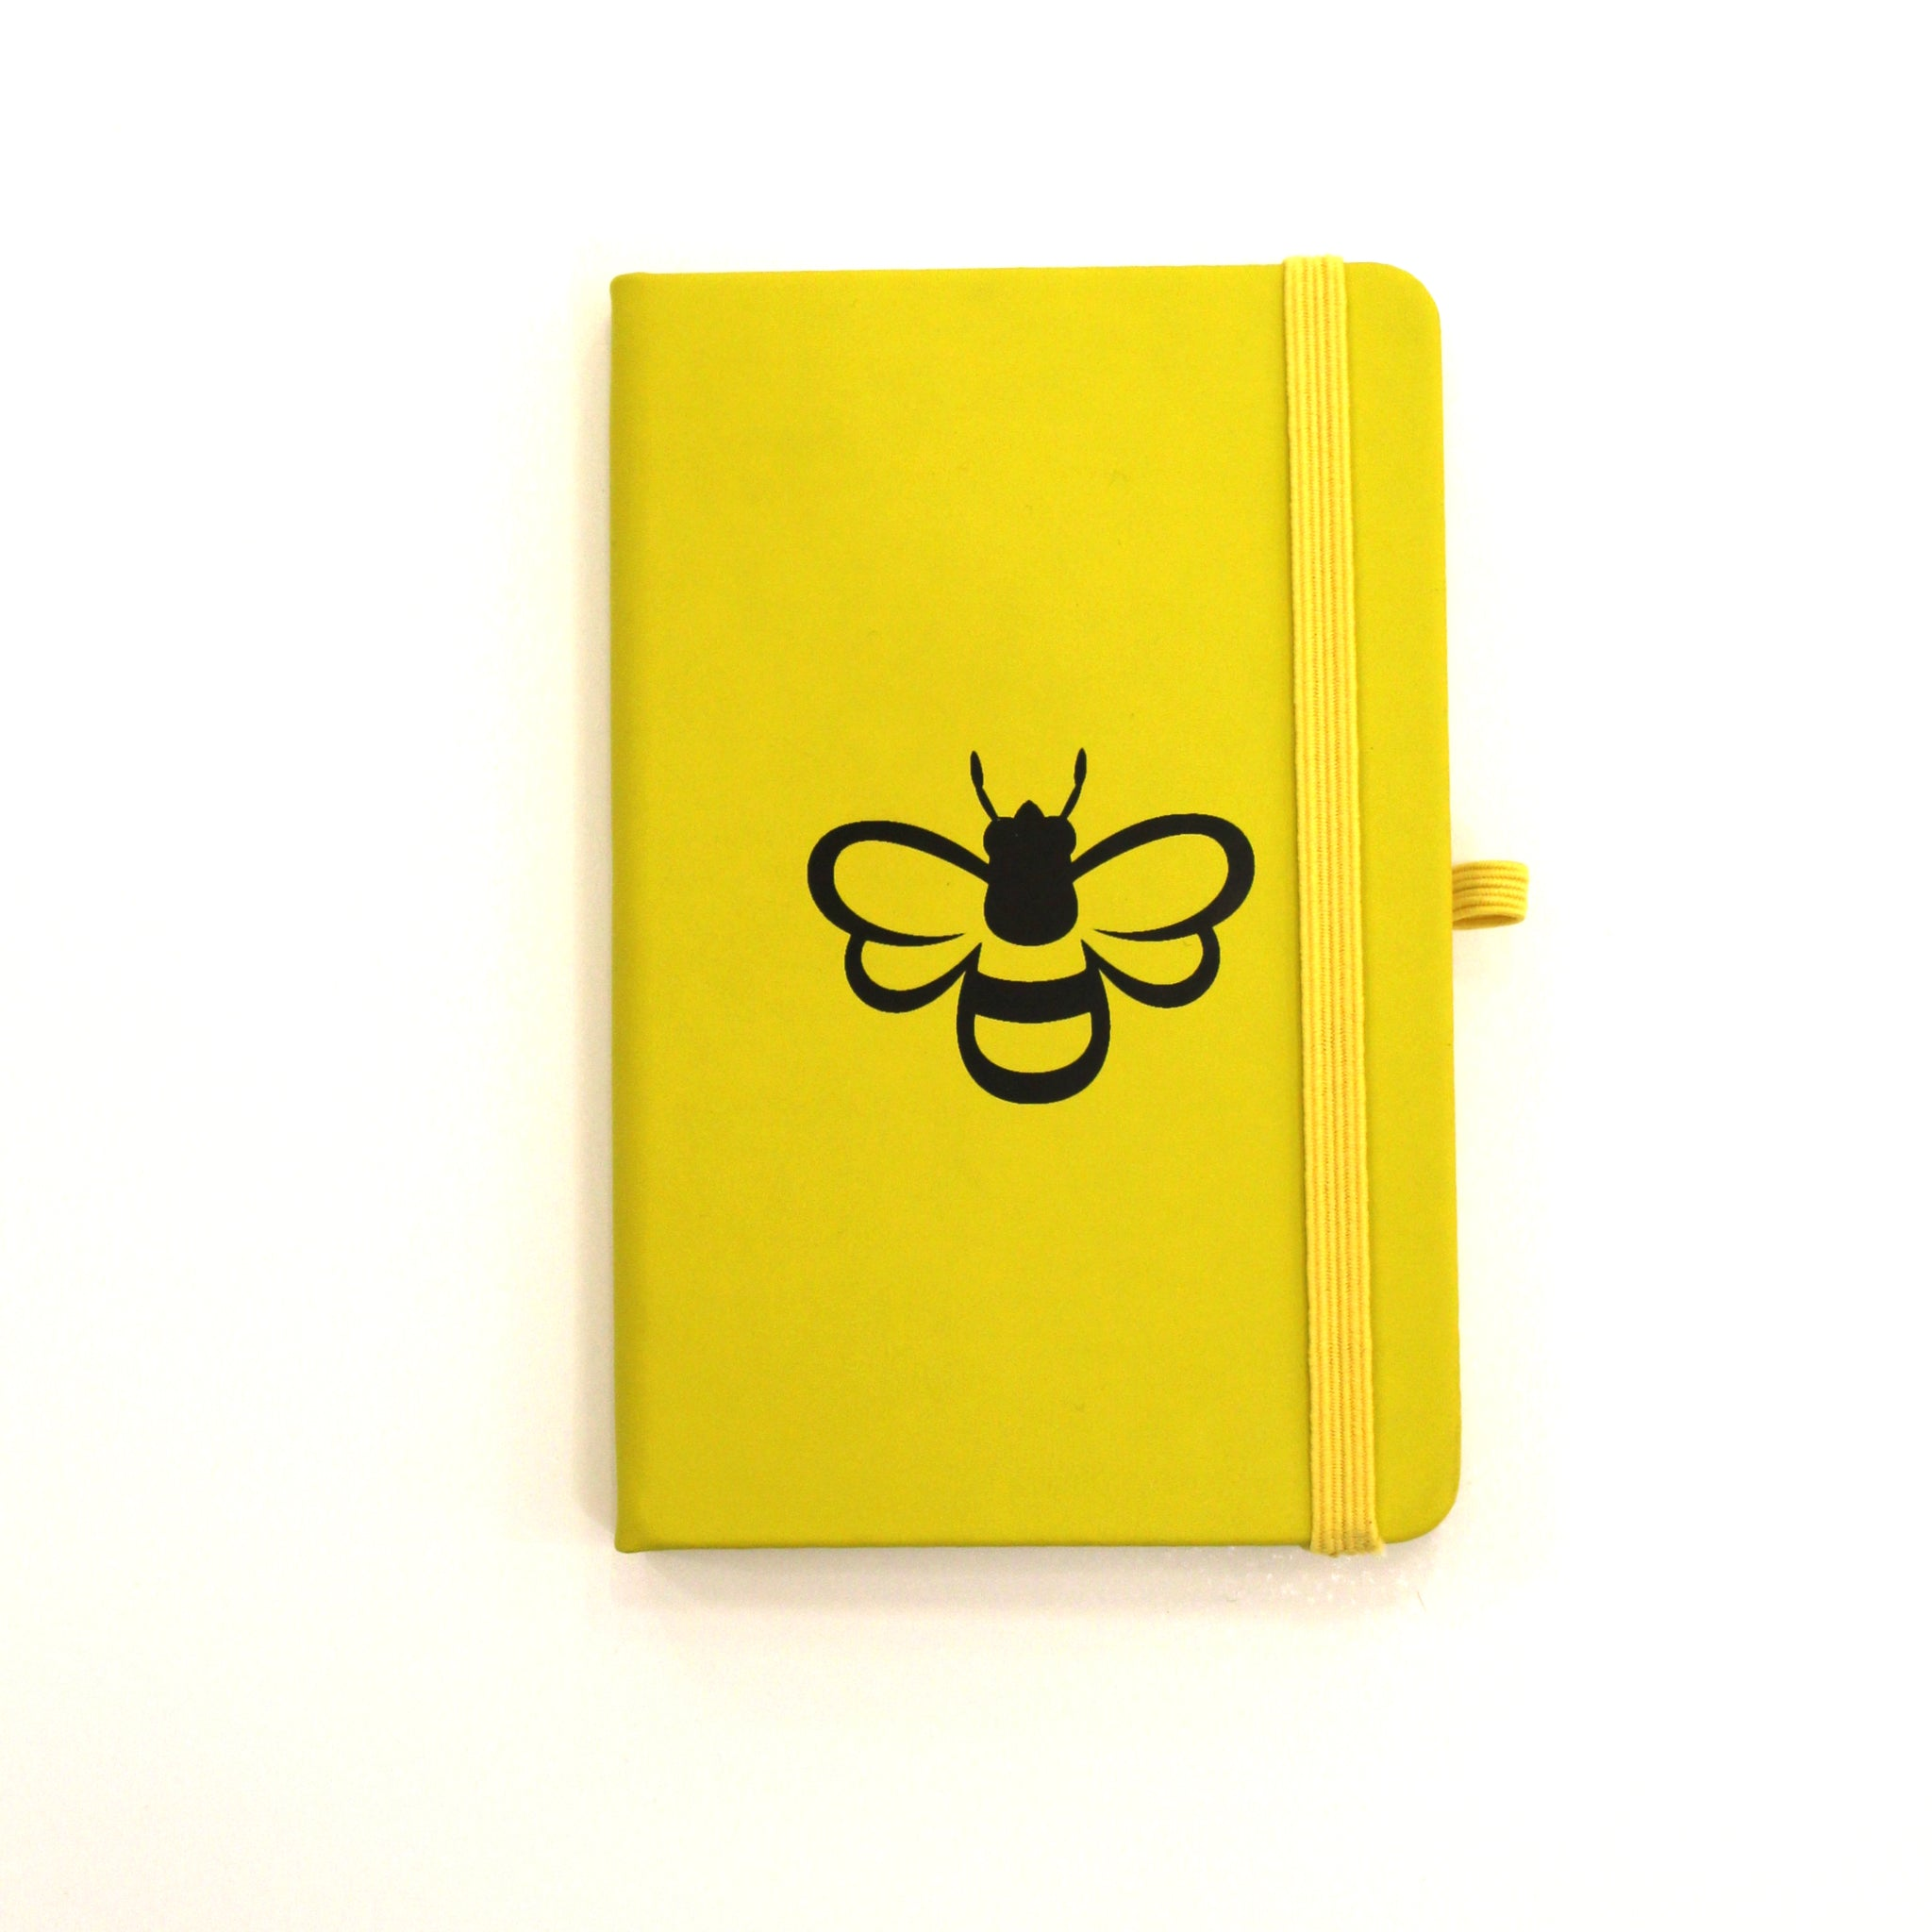 Yellow notebook with black bee outline.